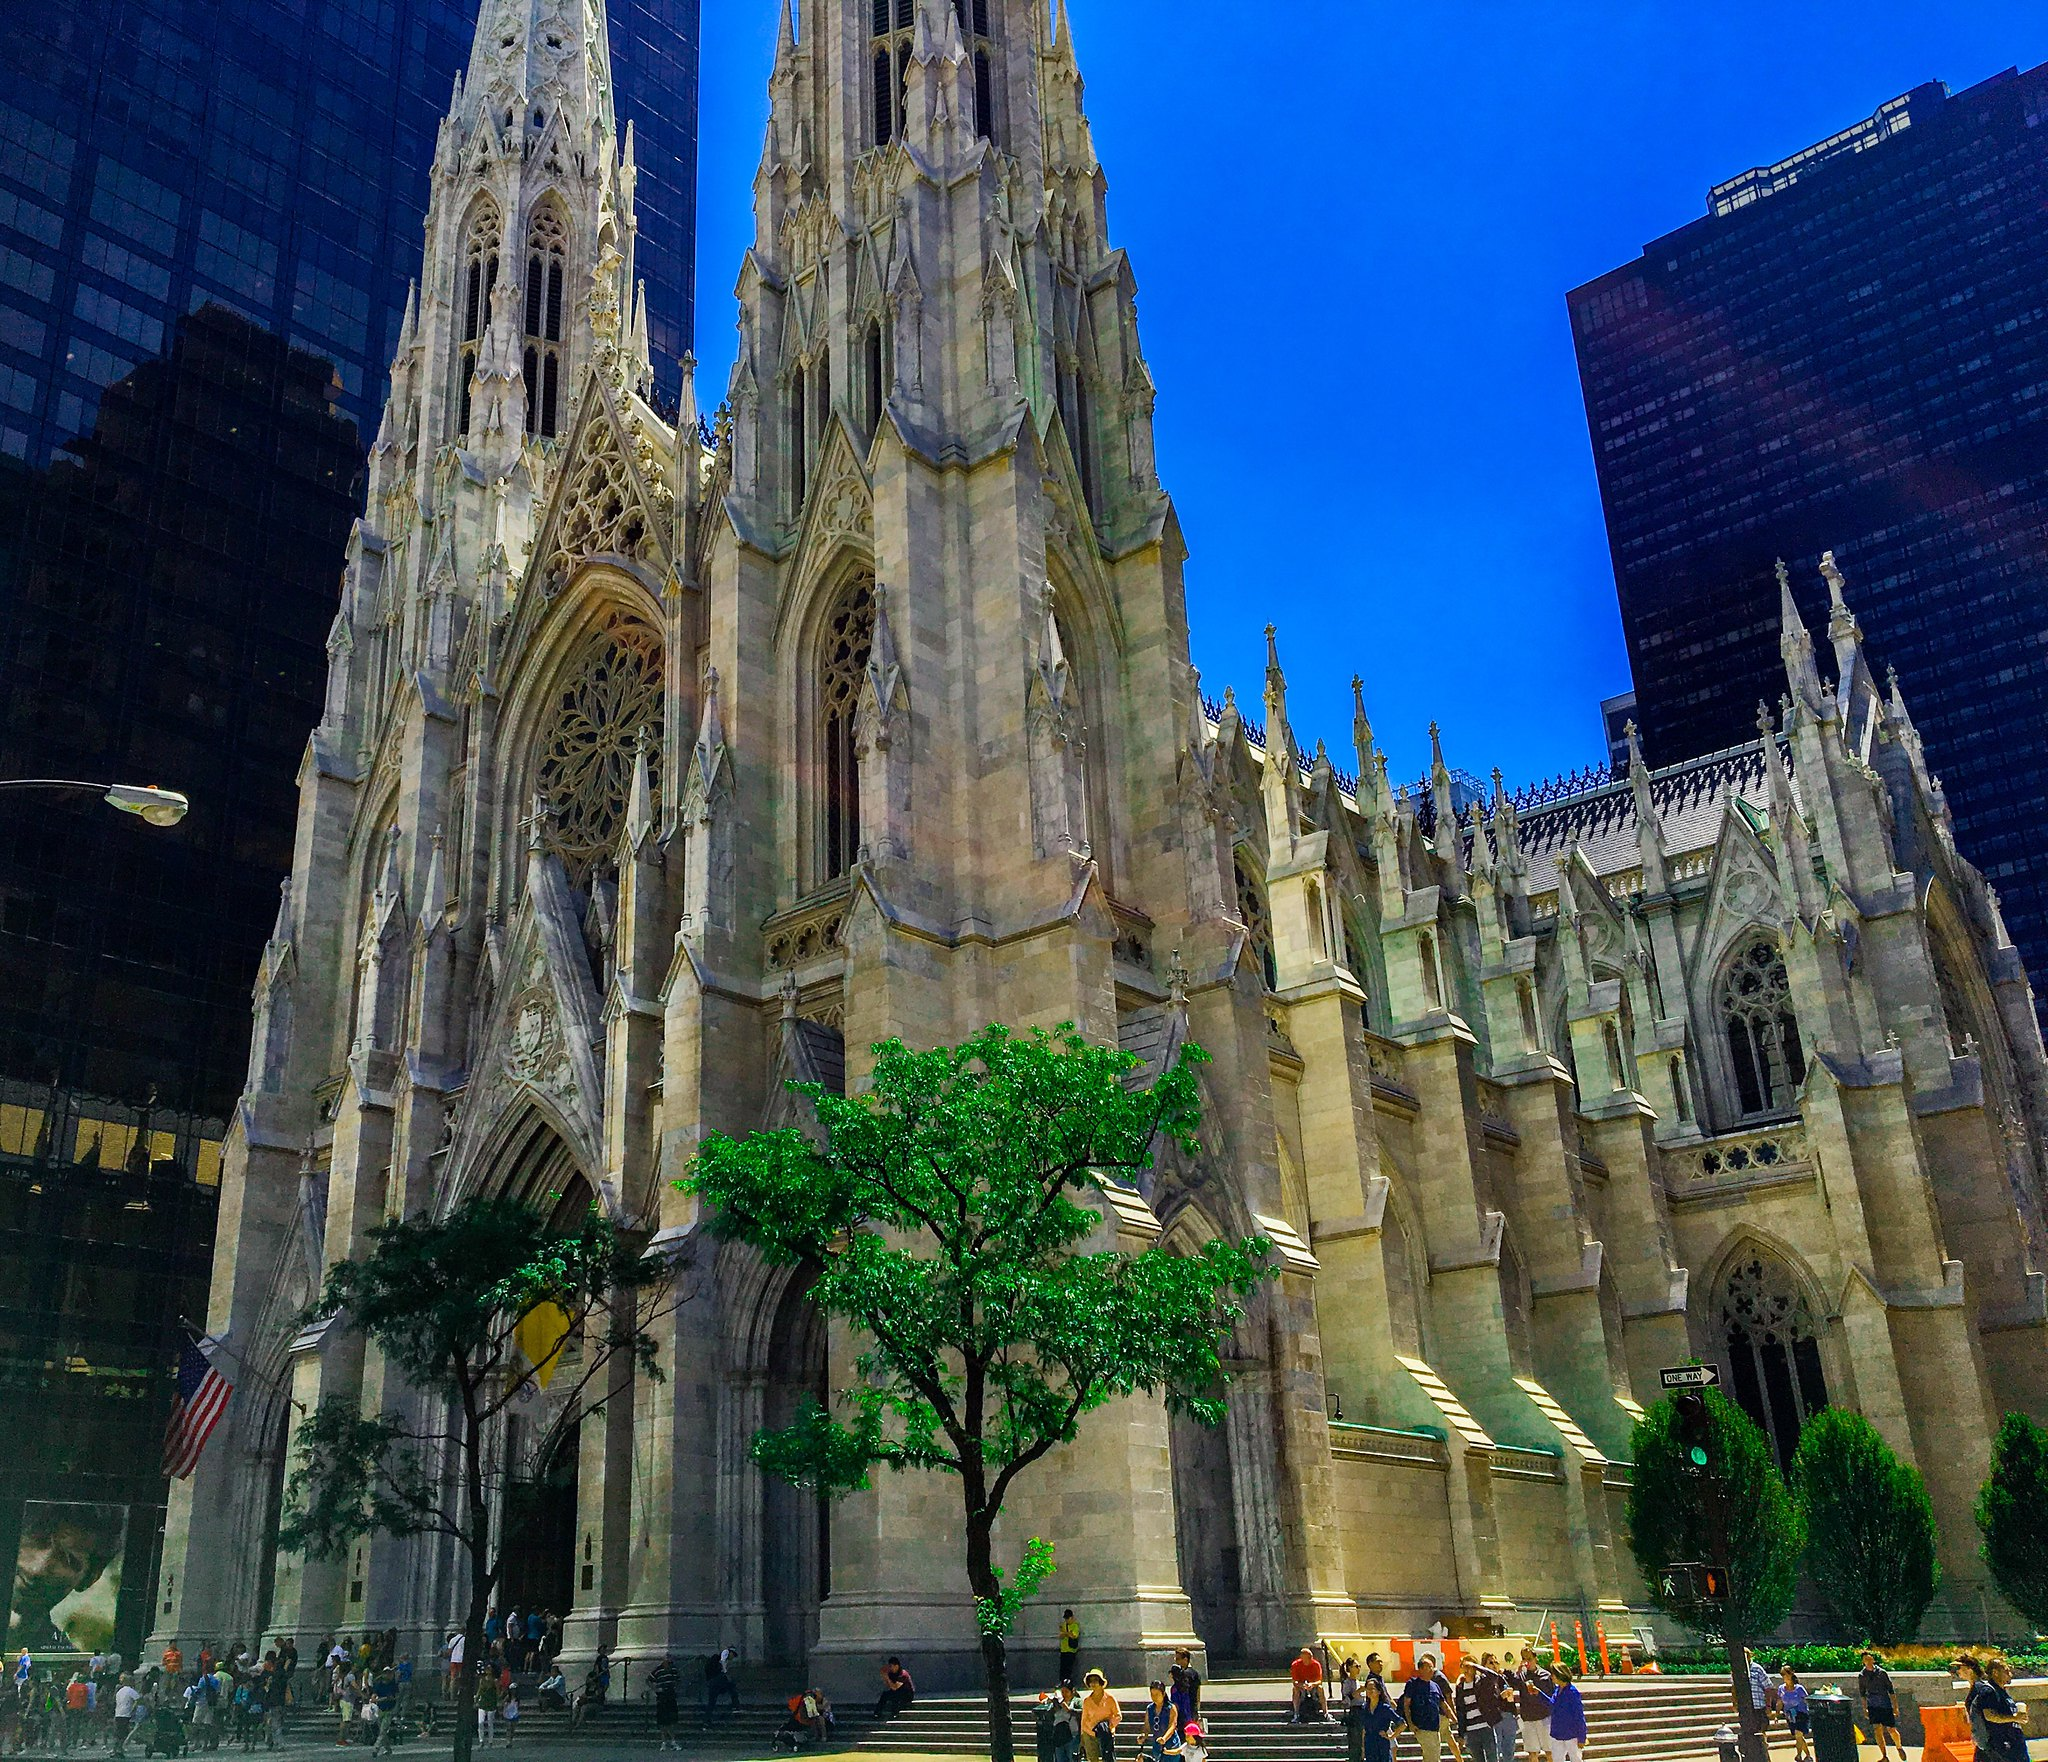 Exterior photo of St. Patrick's Cathedral in New York during summer